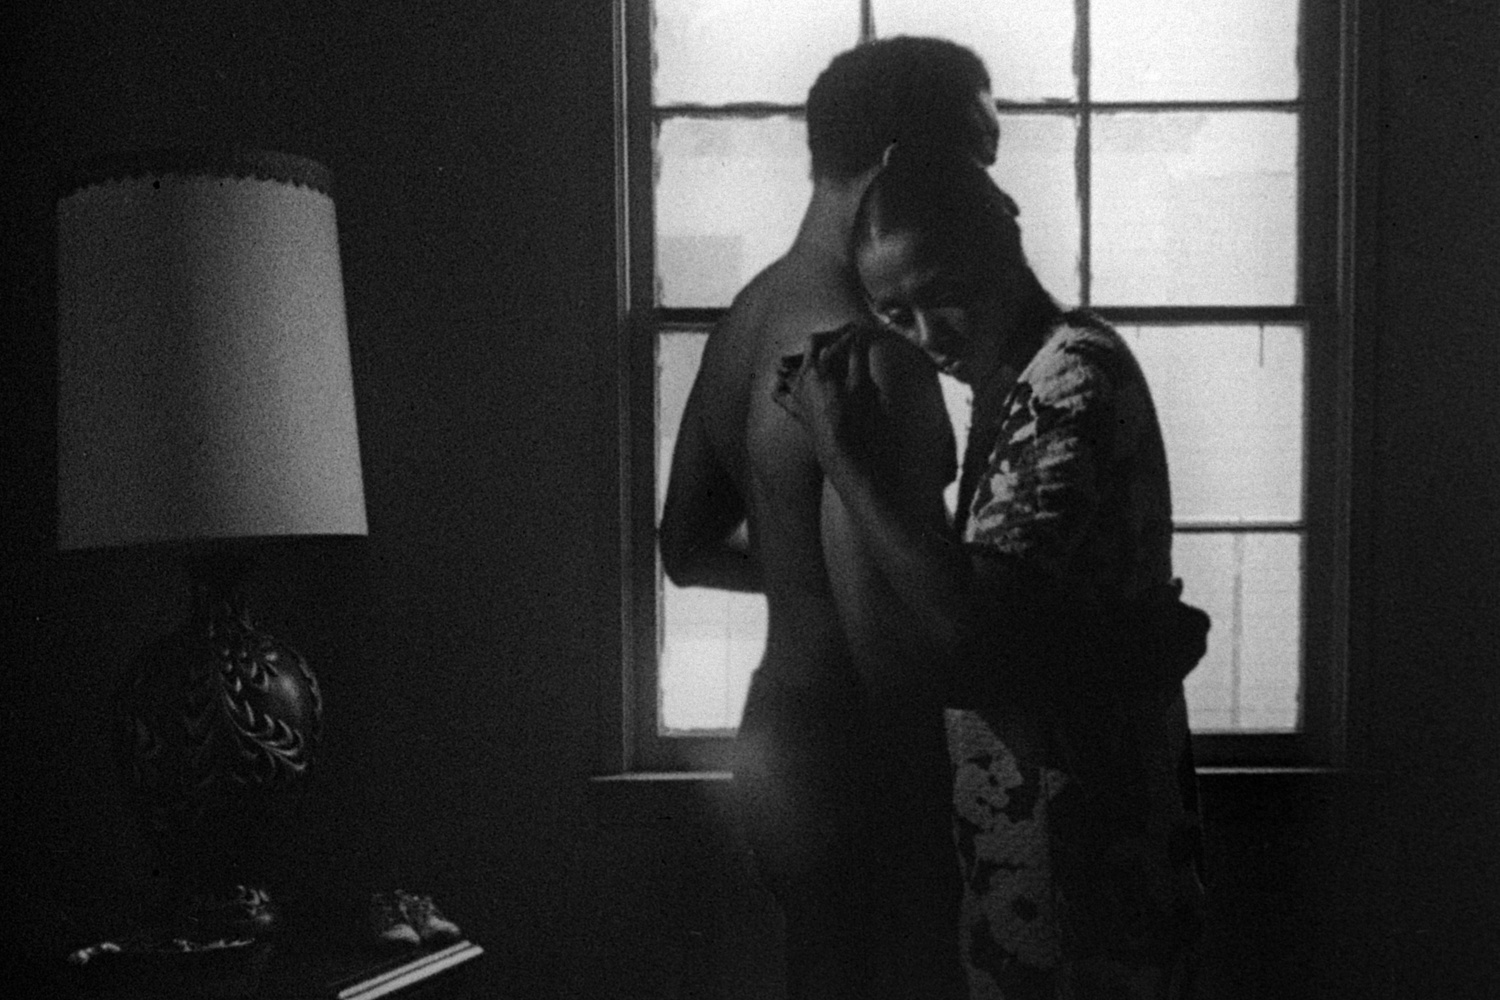 Killer of Sheep. 1977. USA. Directed by Charles Burnett. Courtesy of Milestone Film & Video/Photofest. © Milestone Film & Video